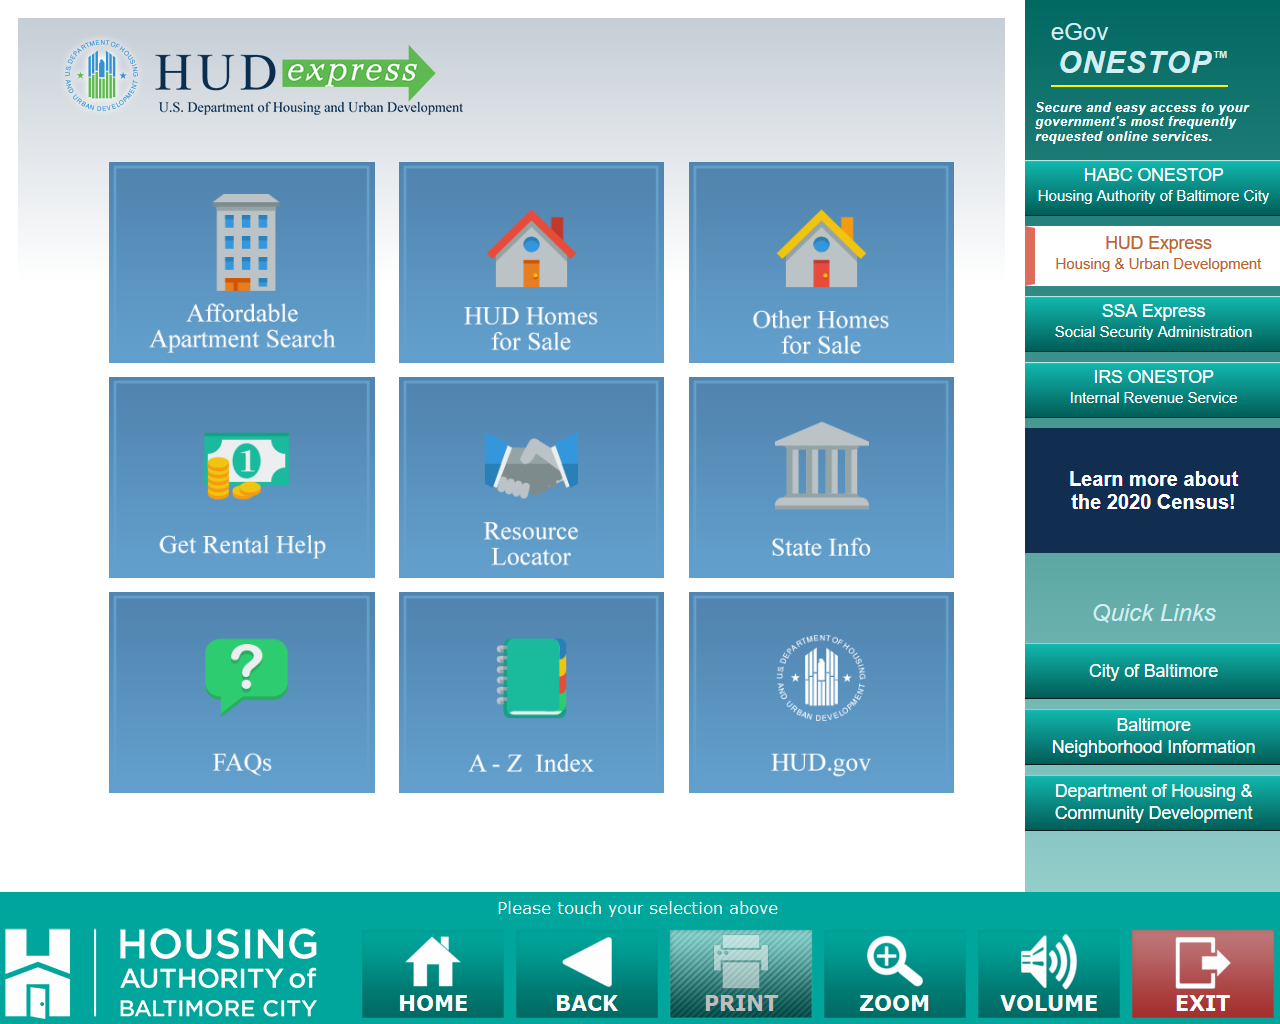 HUD Express Module on PHA OneStop: Housing Authority of Baltimore City